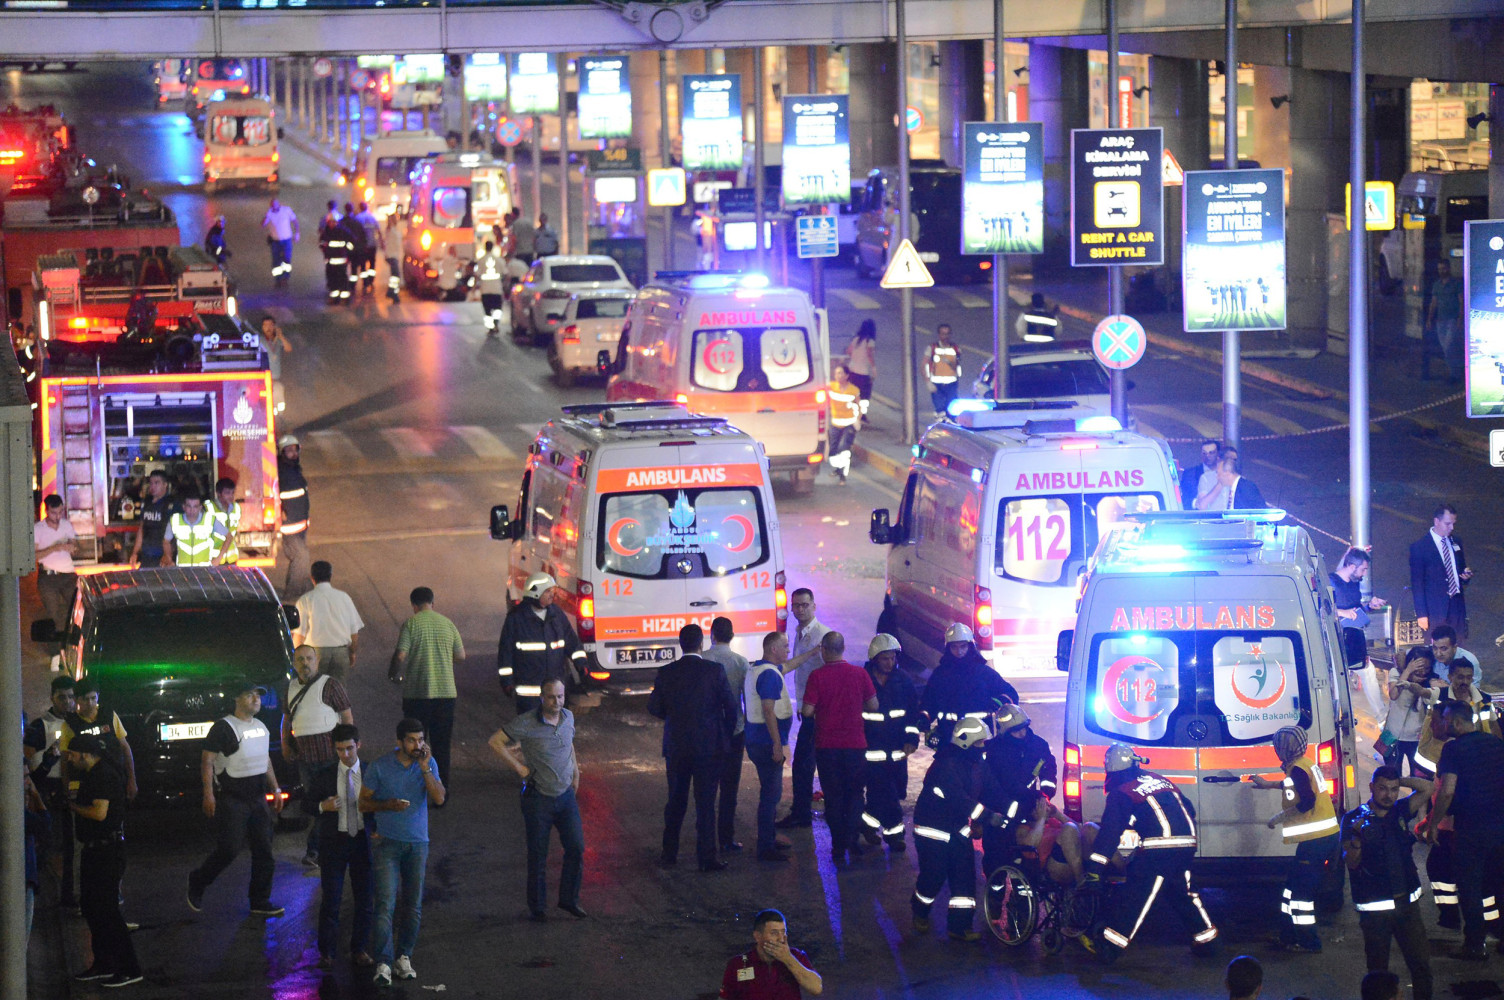 Istanbul Ataturk airport attack: 41 dead and 239 injured in ...